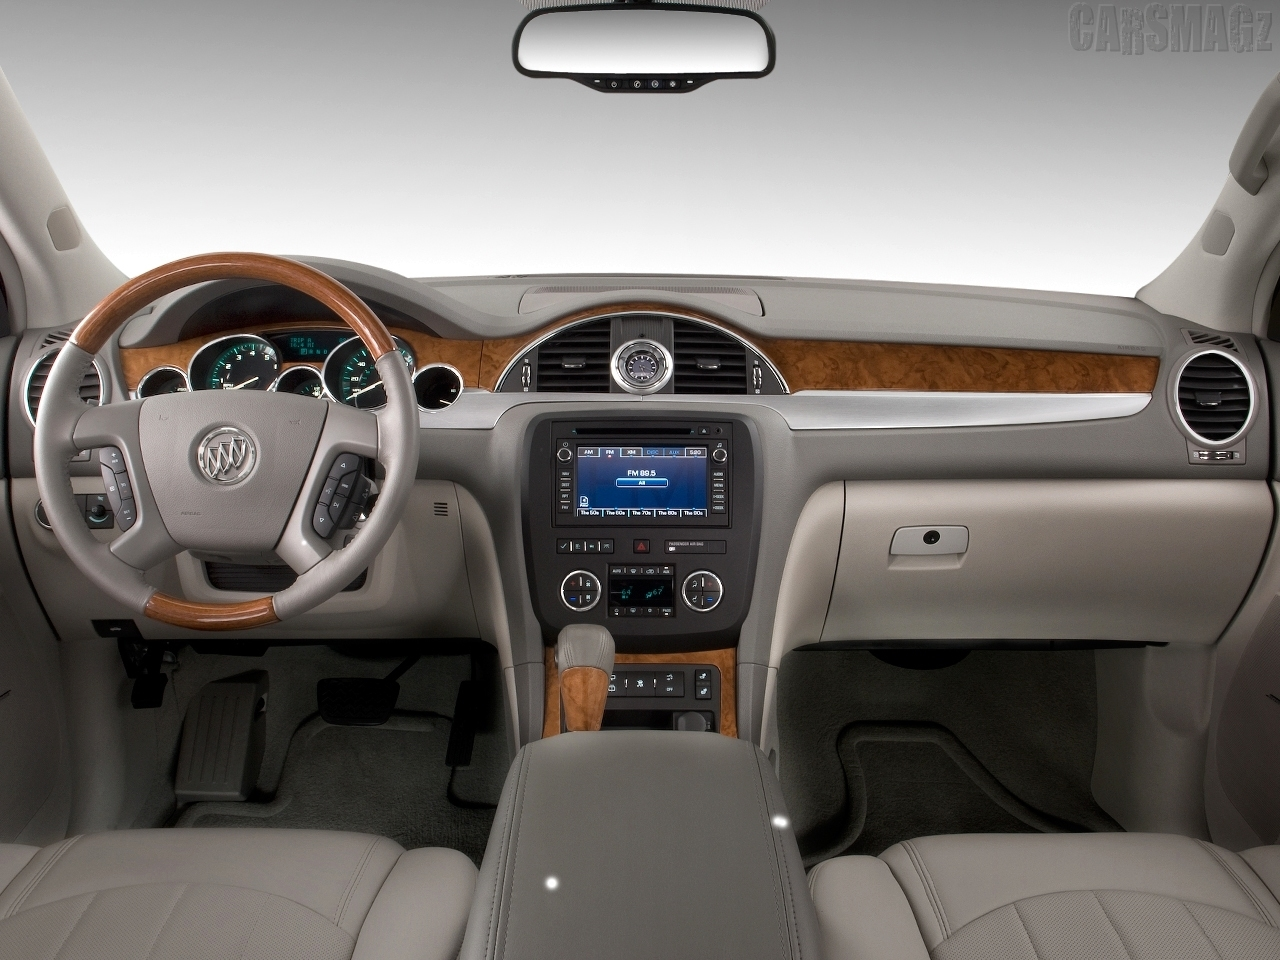 buick Enclave From Interior View Picture.